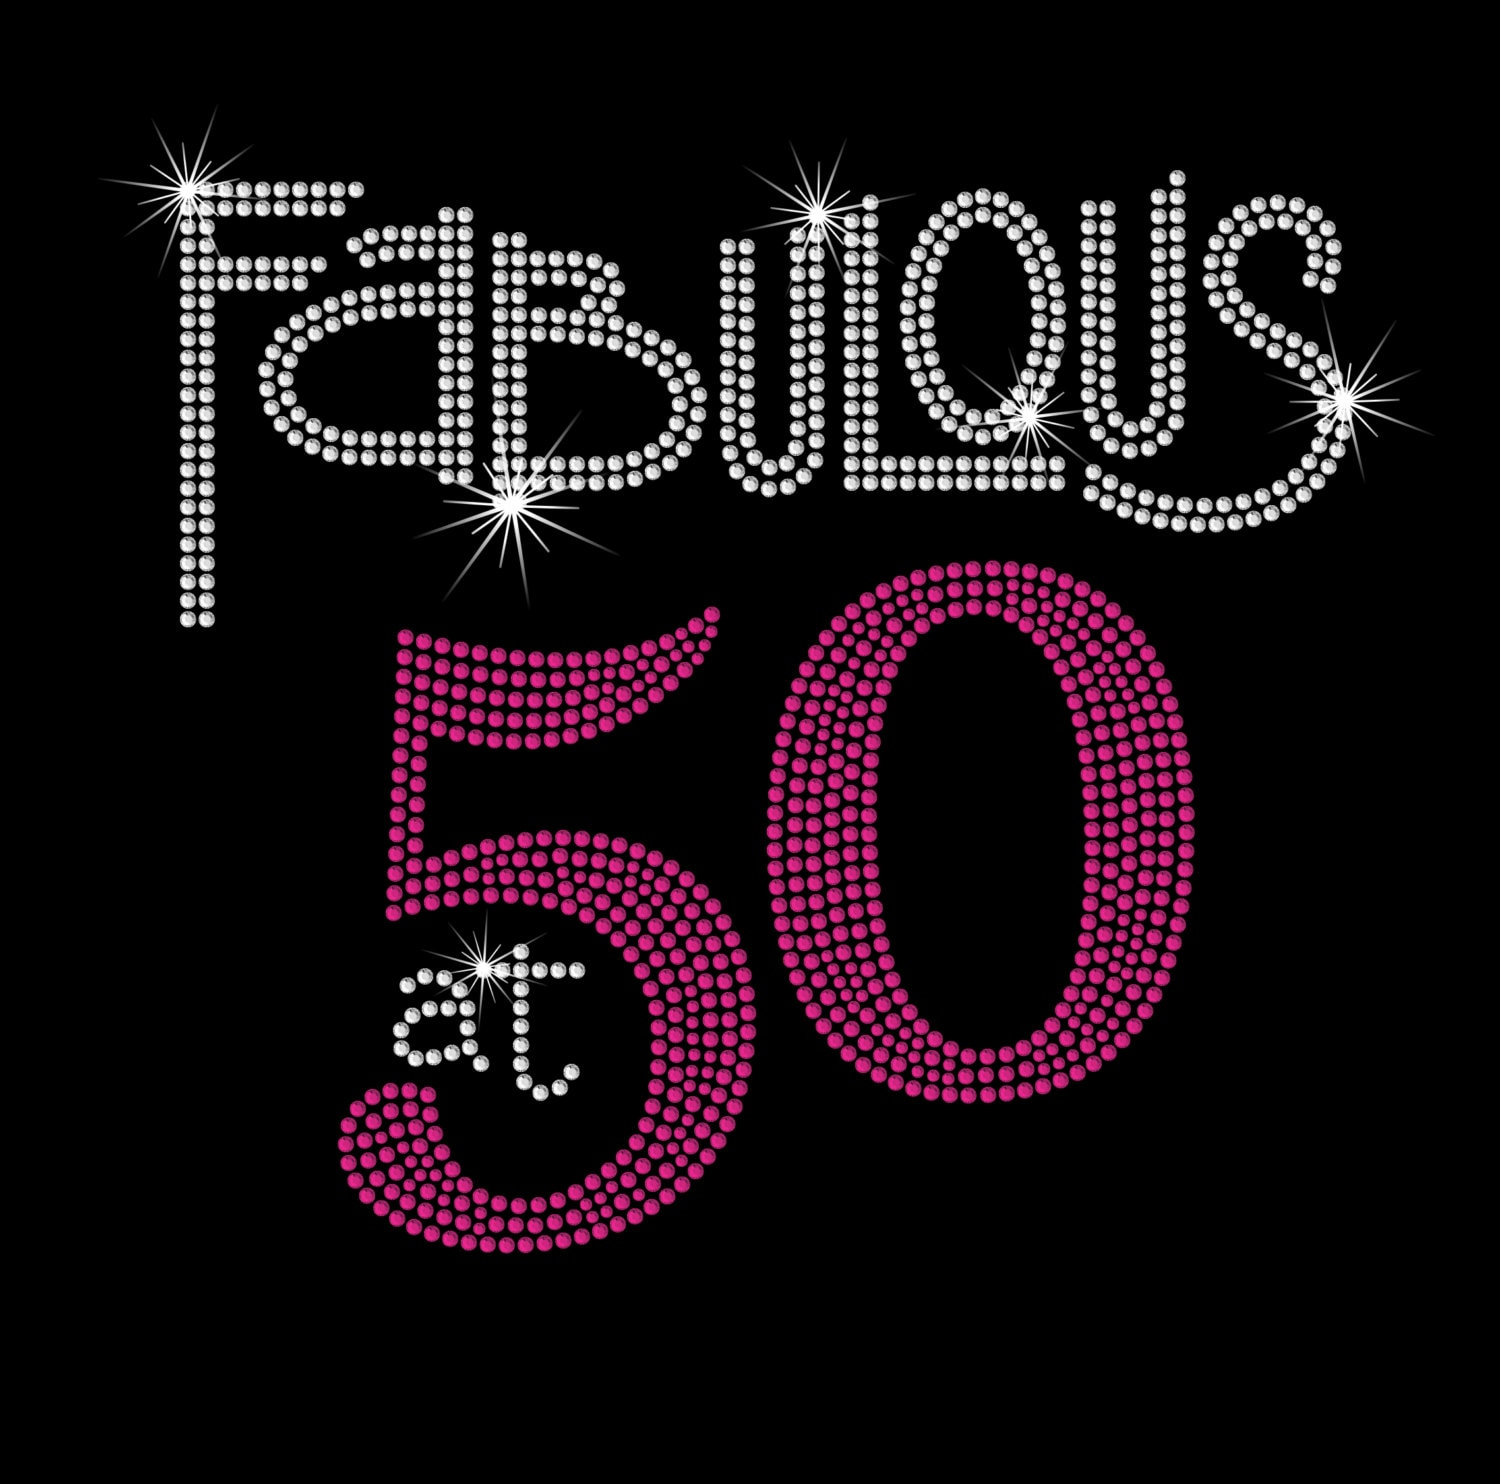 50 Abd Fabulou: Fabulous At 50 Hot Fix Rhinestone Bling Iron On Heat Transfer